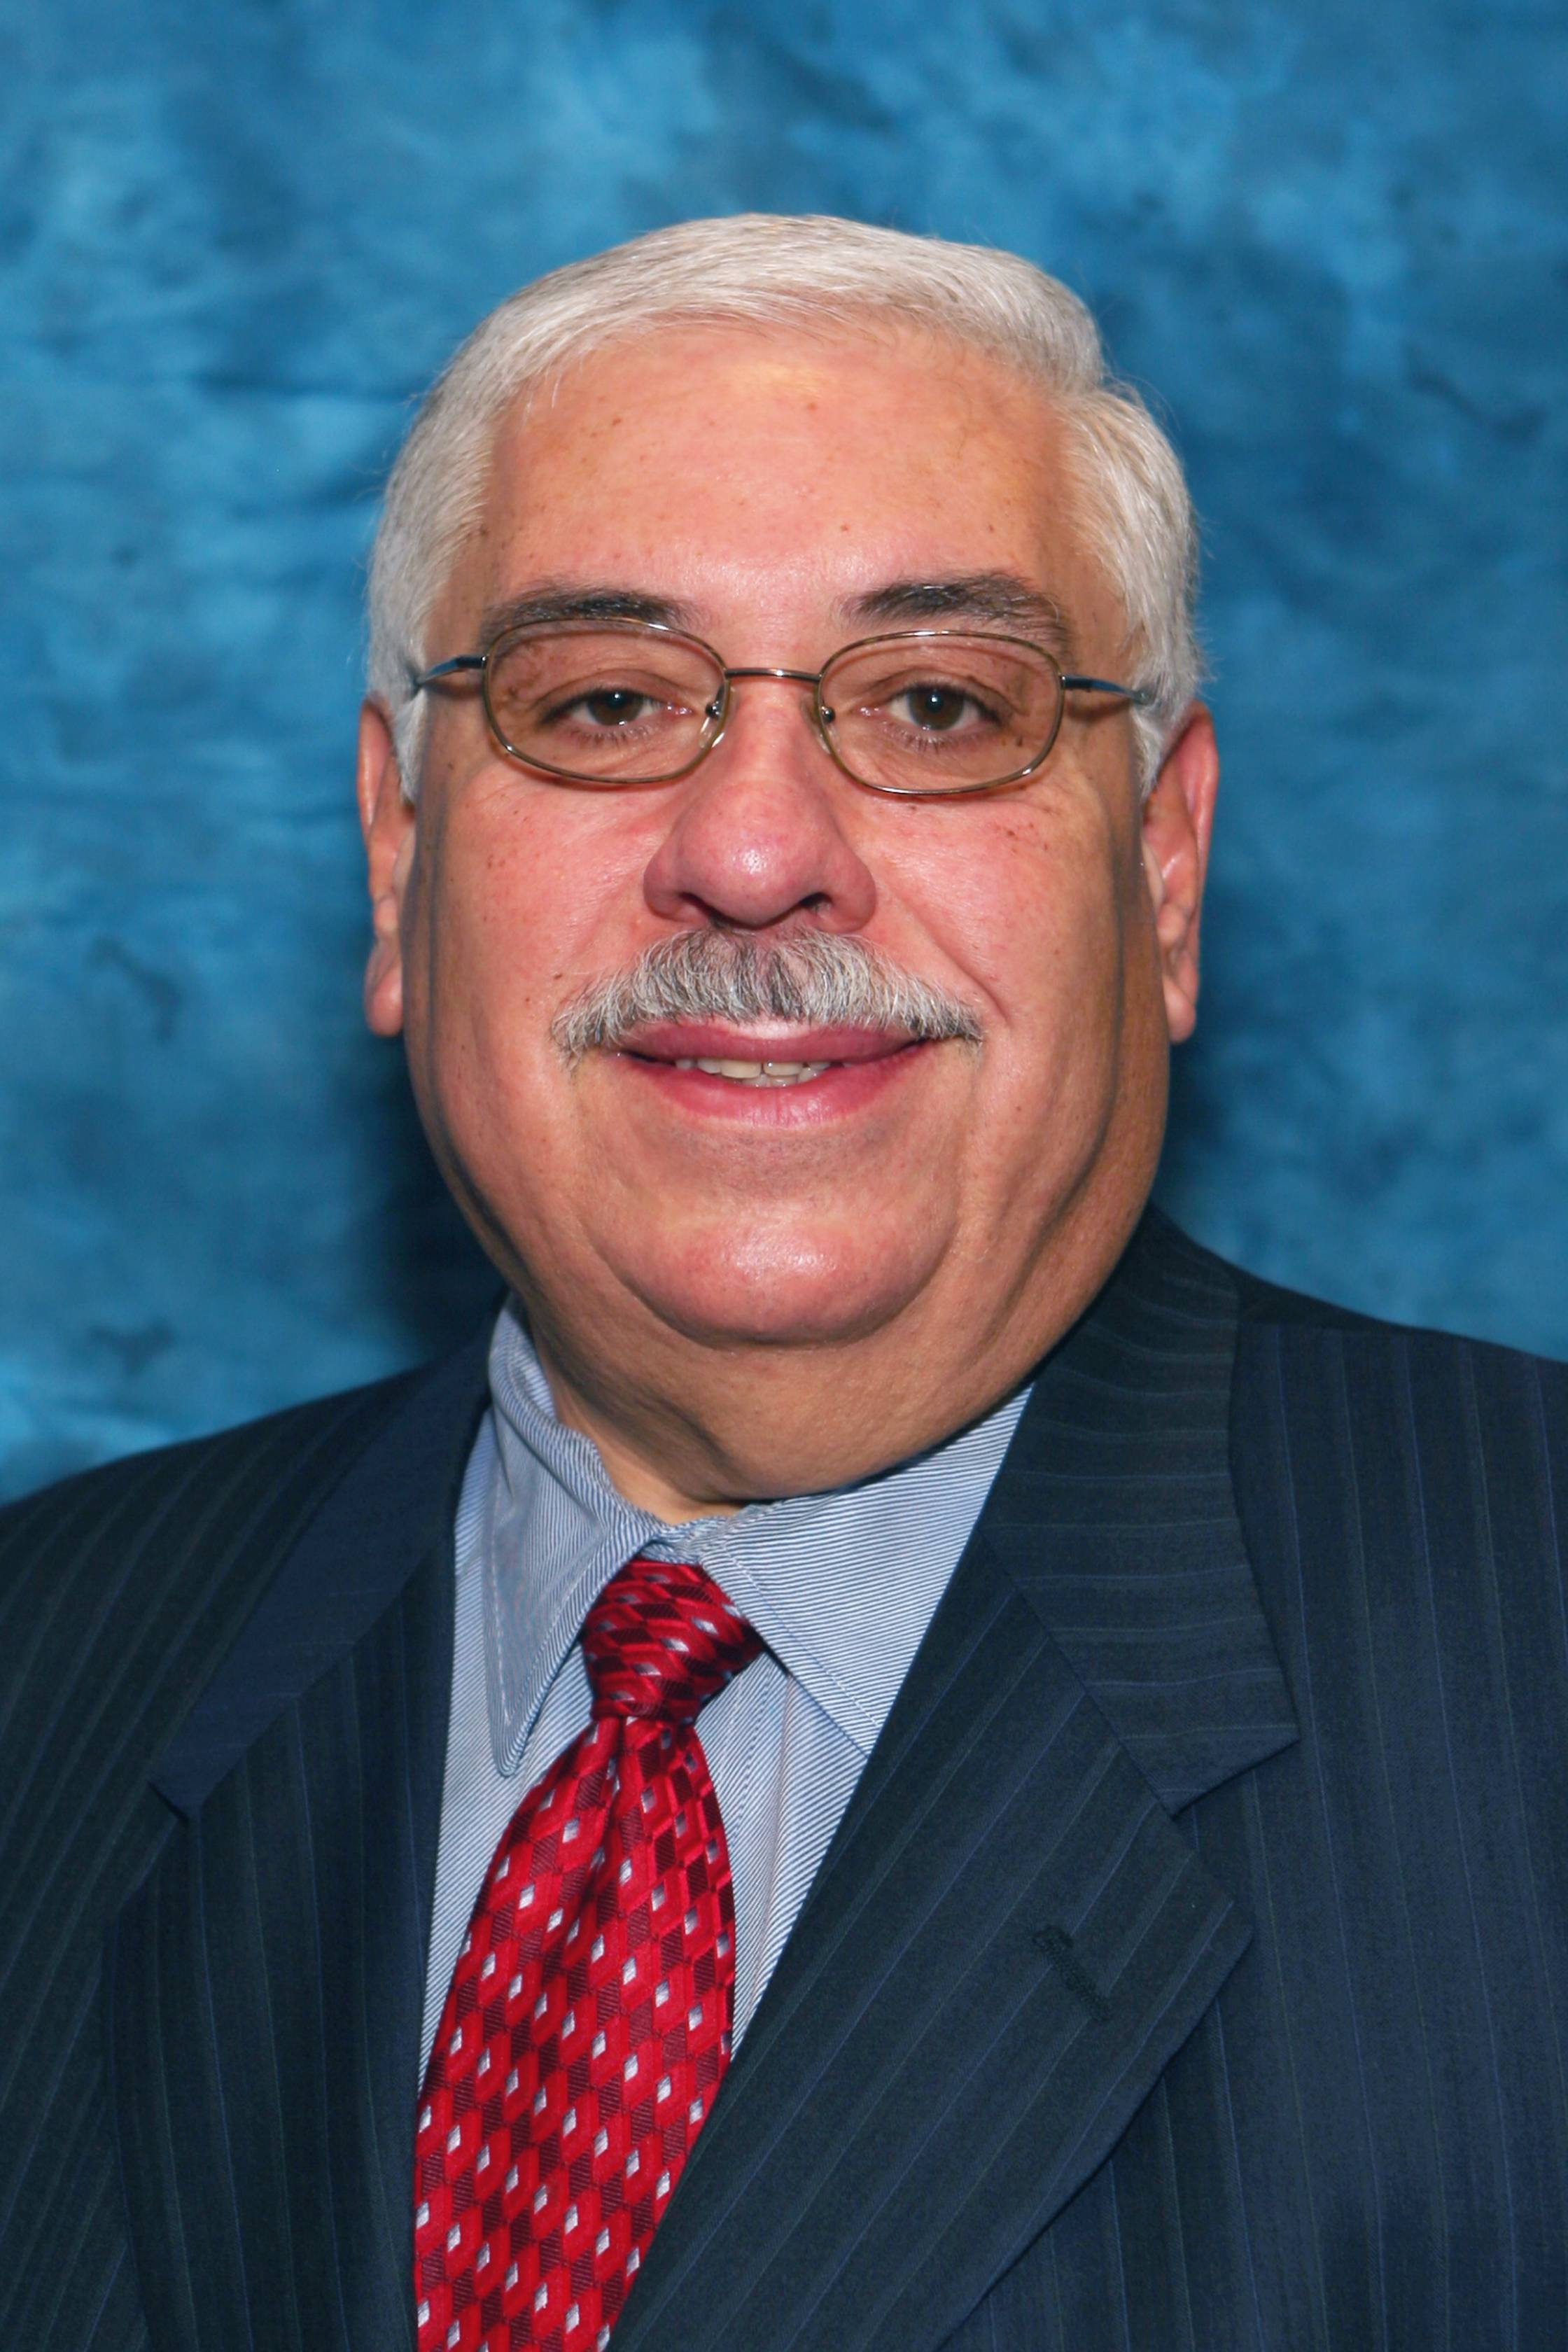 Berrios' assessor's office gives tax break to firm's lobbying client